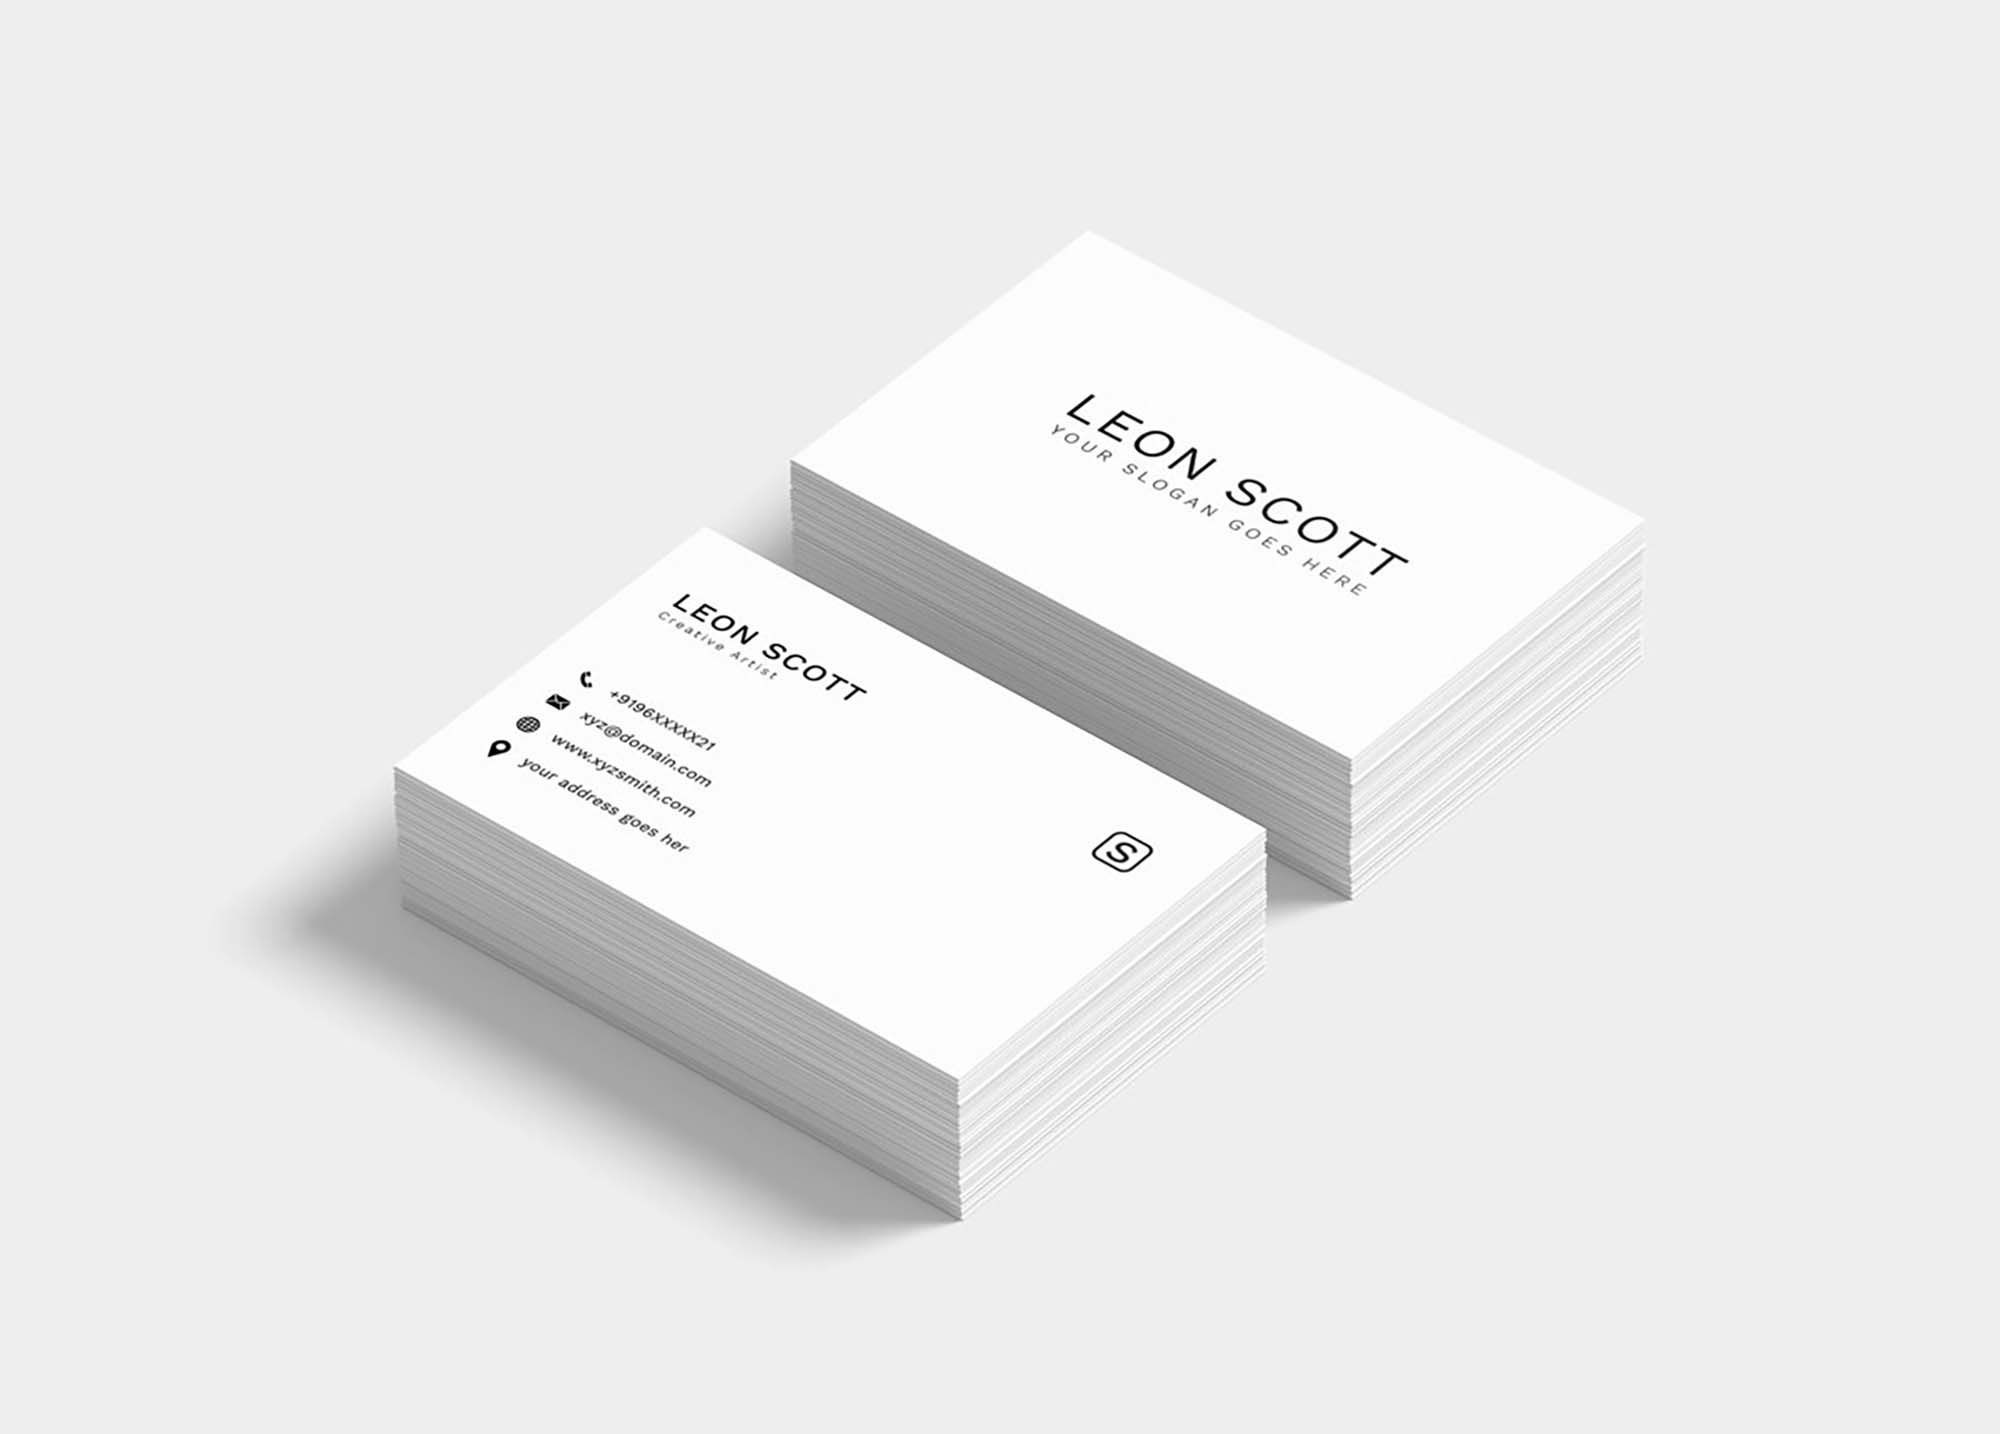 006 Shocking Minimal Busines Card Template Free Highest Quality  Easy Simple DownloadFull